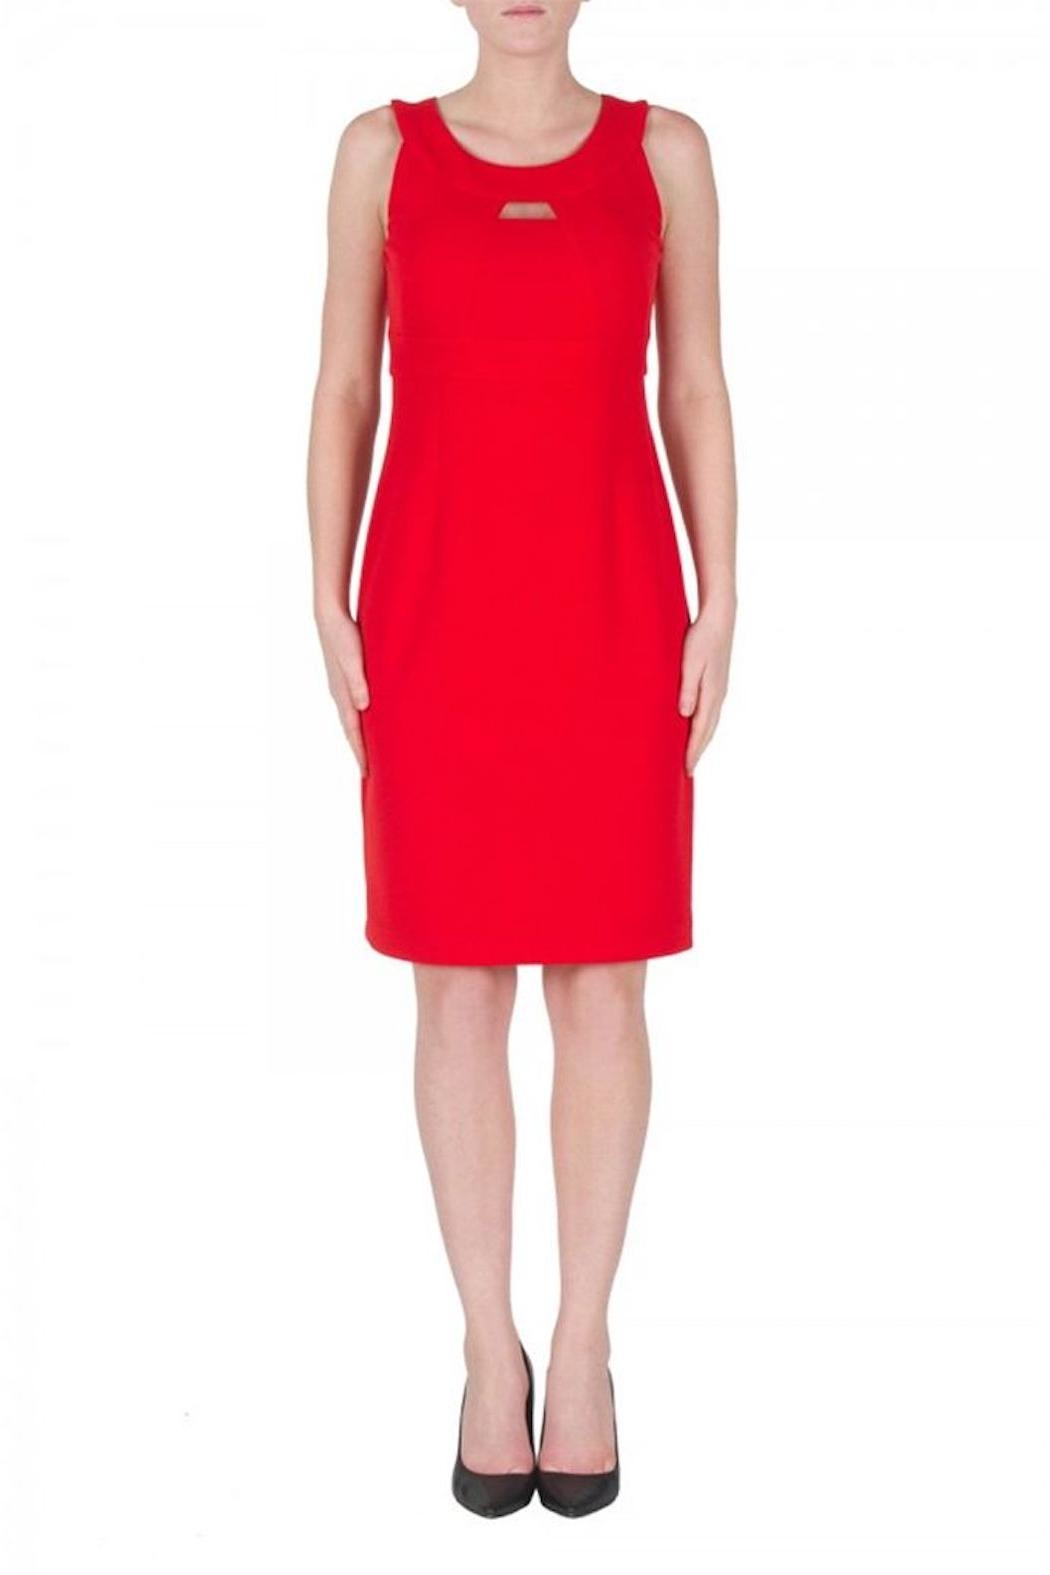 Joseph Ribkoff Red Cocktail Dress - Front Cropped Image